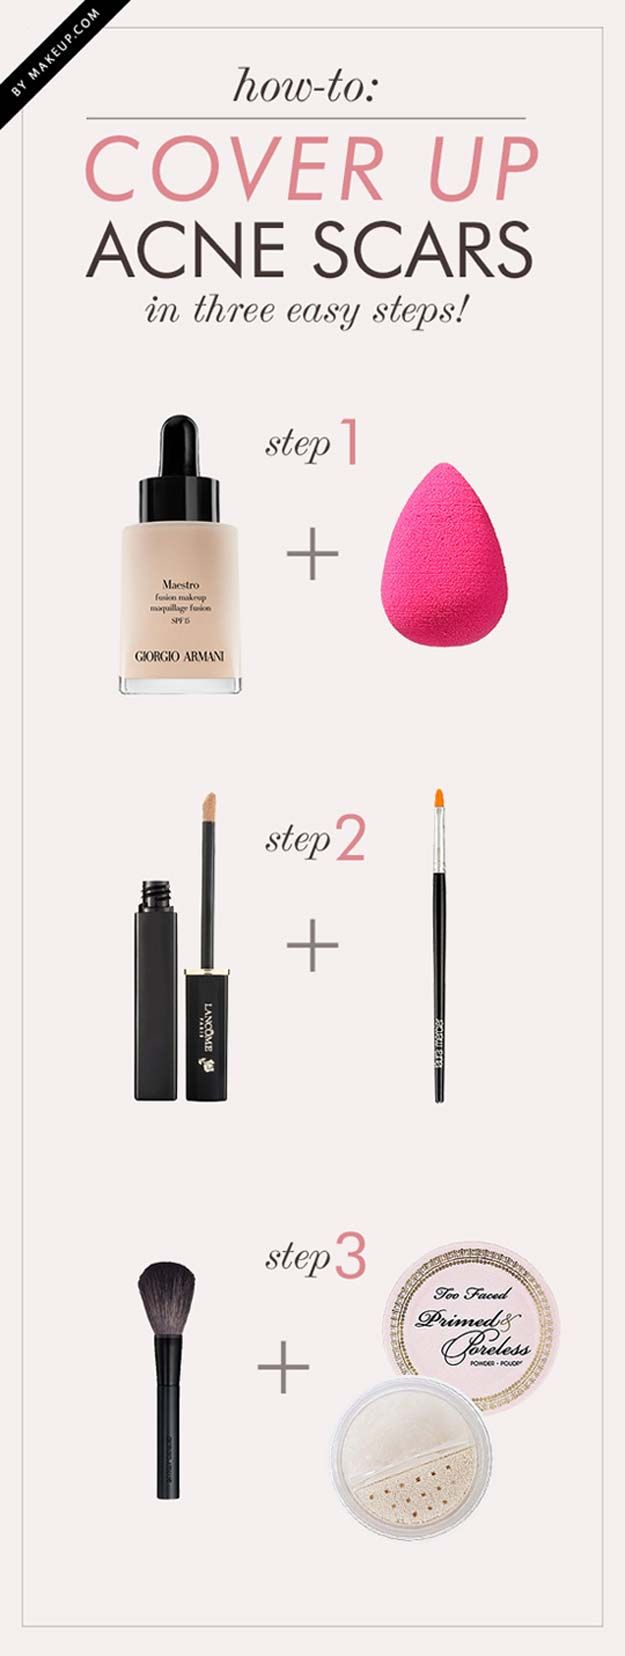 Best Beauty Hacks - How do I Cover Up Acne Scars? - Easy Makeup Tutorials and Makeup Ideas for Teens, Beginners, Women, Teenagers - Cool Tips and Tricks for Mascara, Lipstick, Foundation, Hair, Blush, Eyeshadow, Eyebrows and Eyes - Step by Step Tutorials and How To http://diyprojectsforteens.com/best-beauty-hacks